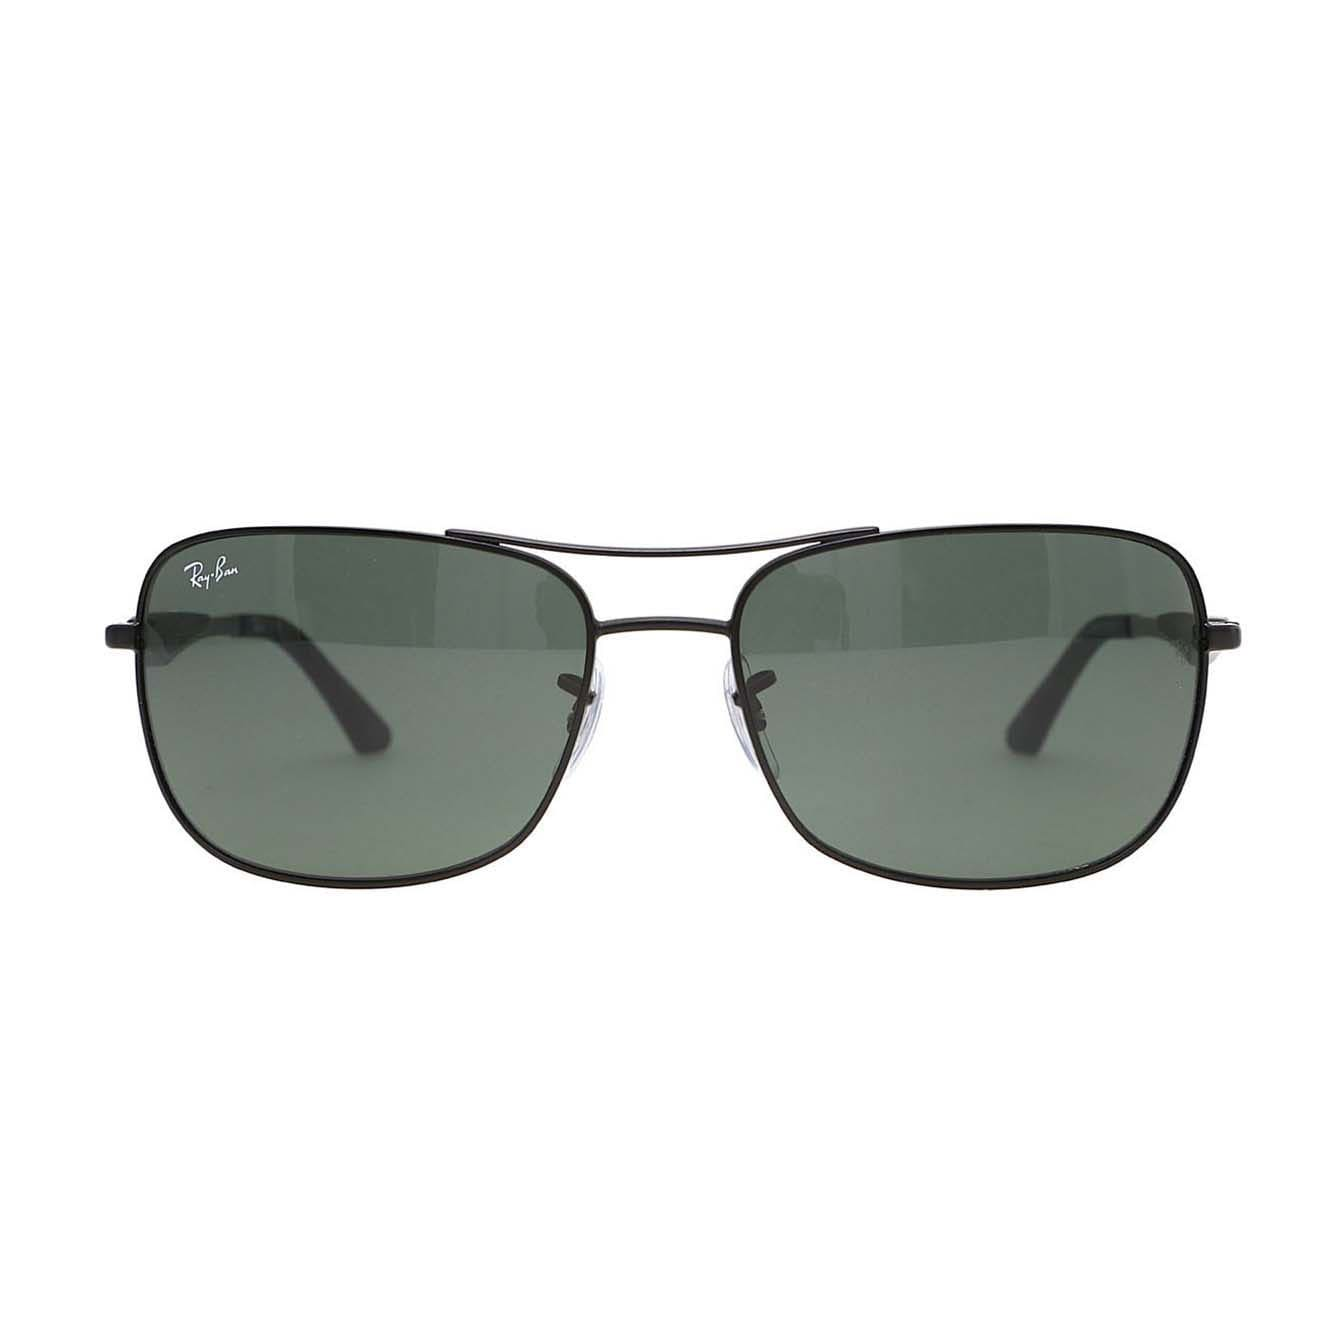 47572bee7c1 Shop Ray-Ban RB3515 006 71 Black Frame Green Classic 58m Lens Sunglasses -  Free Shipping Today - Overstock - 14327886